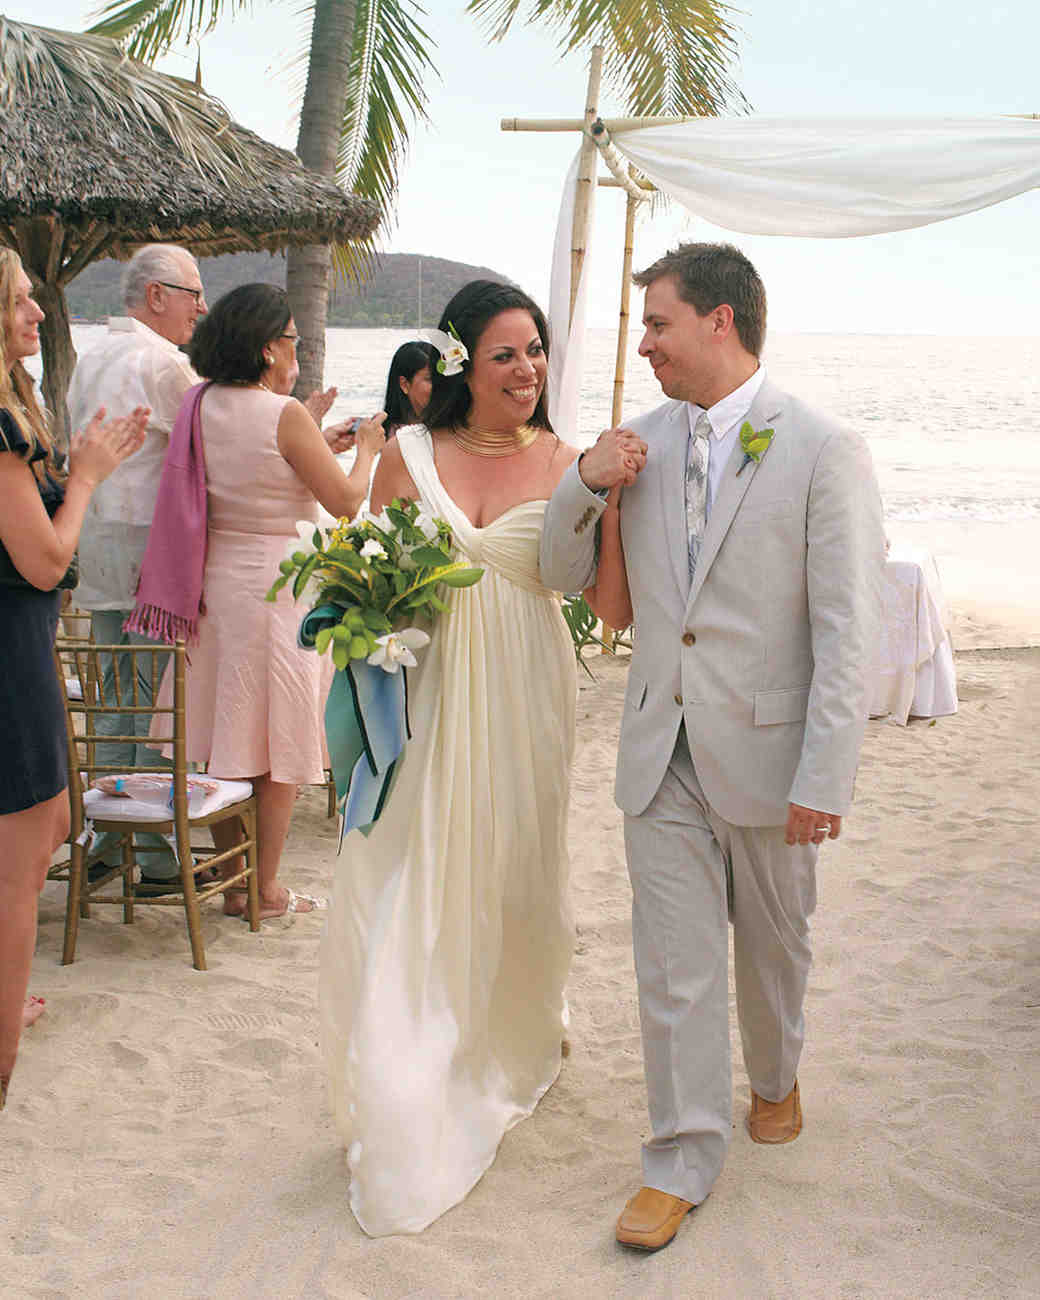 Destination Weddings In Mexico: A Navy-and-White Destination Wedding On The Beach In